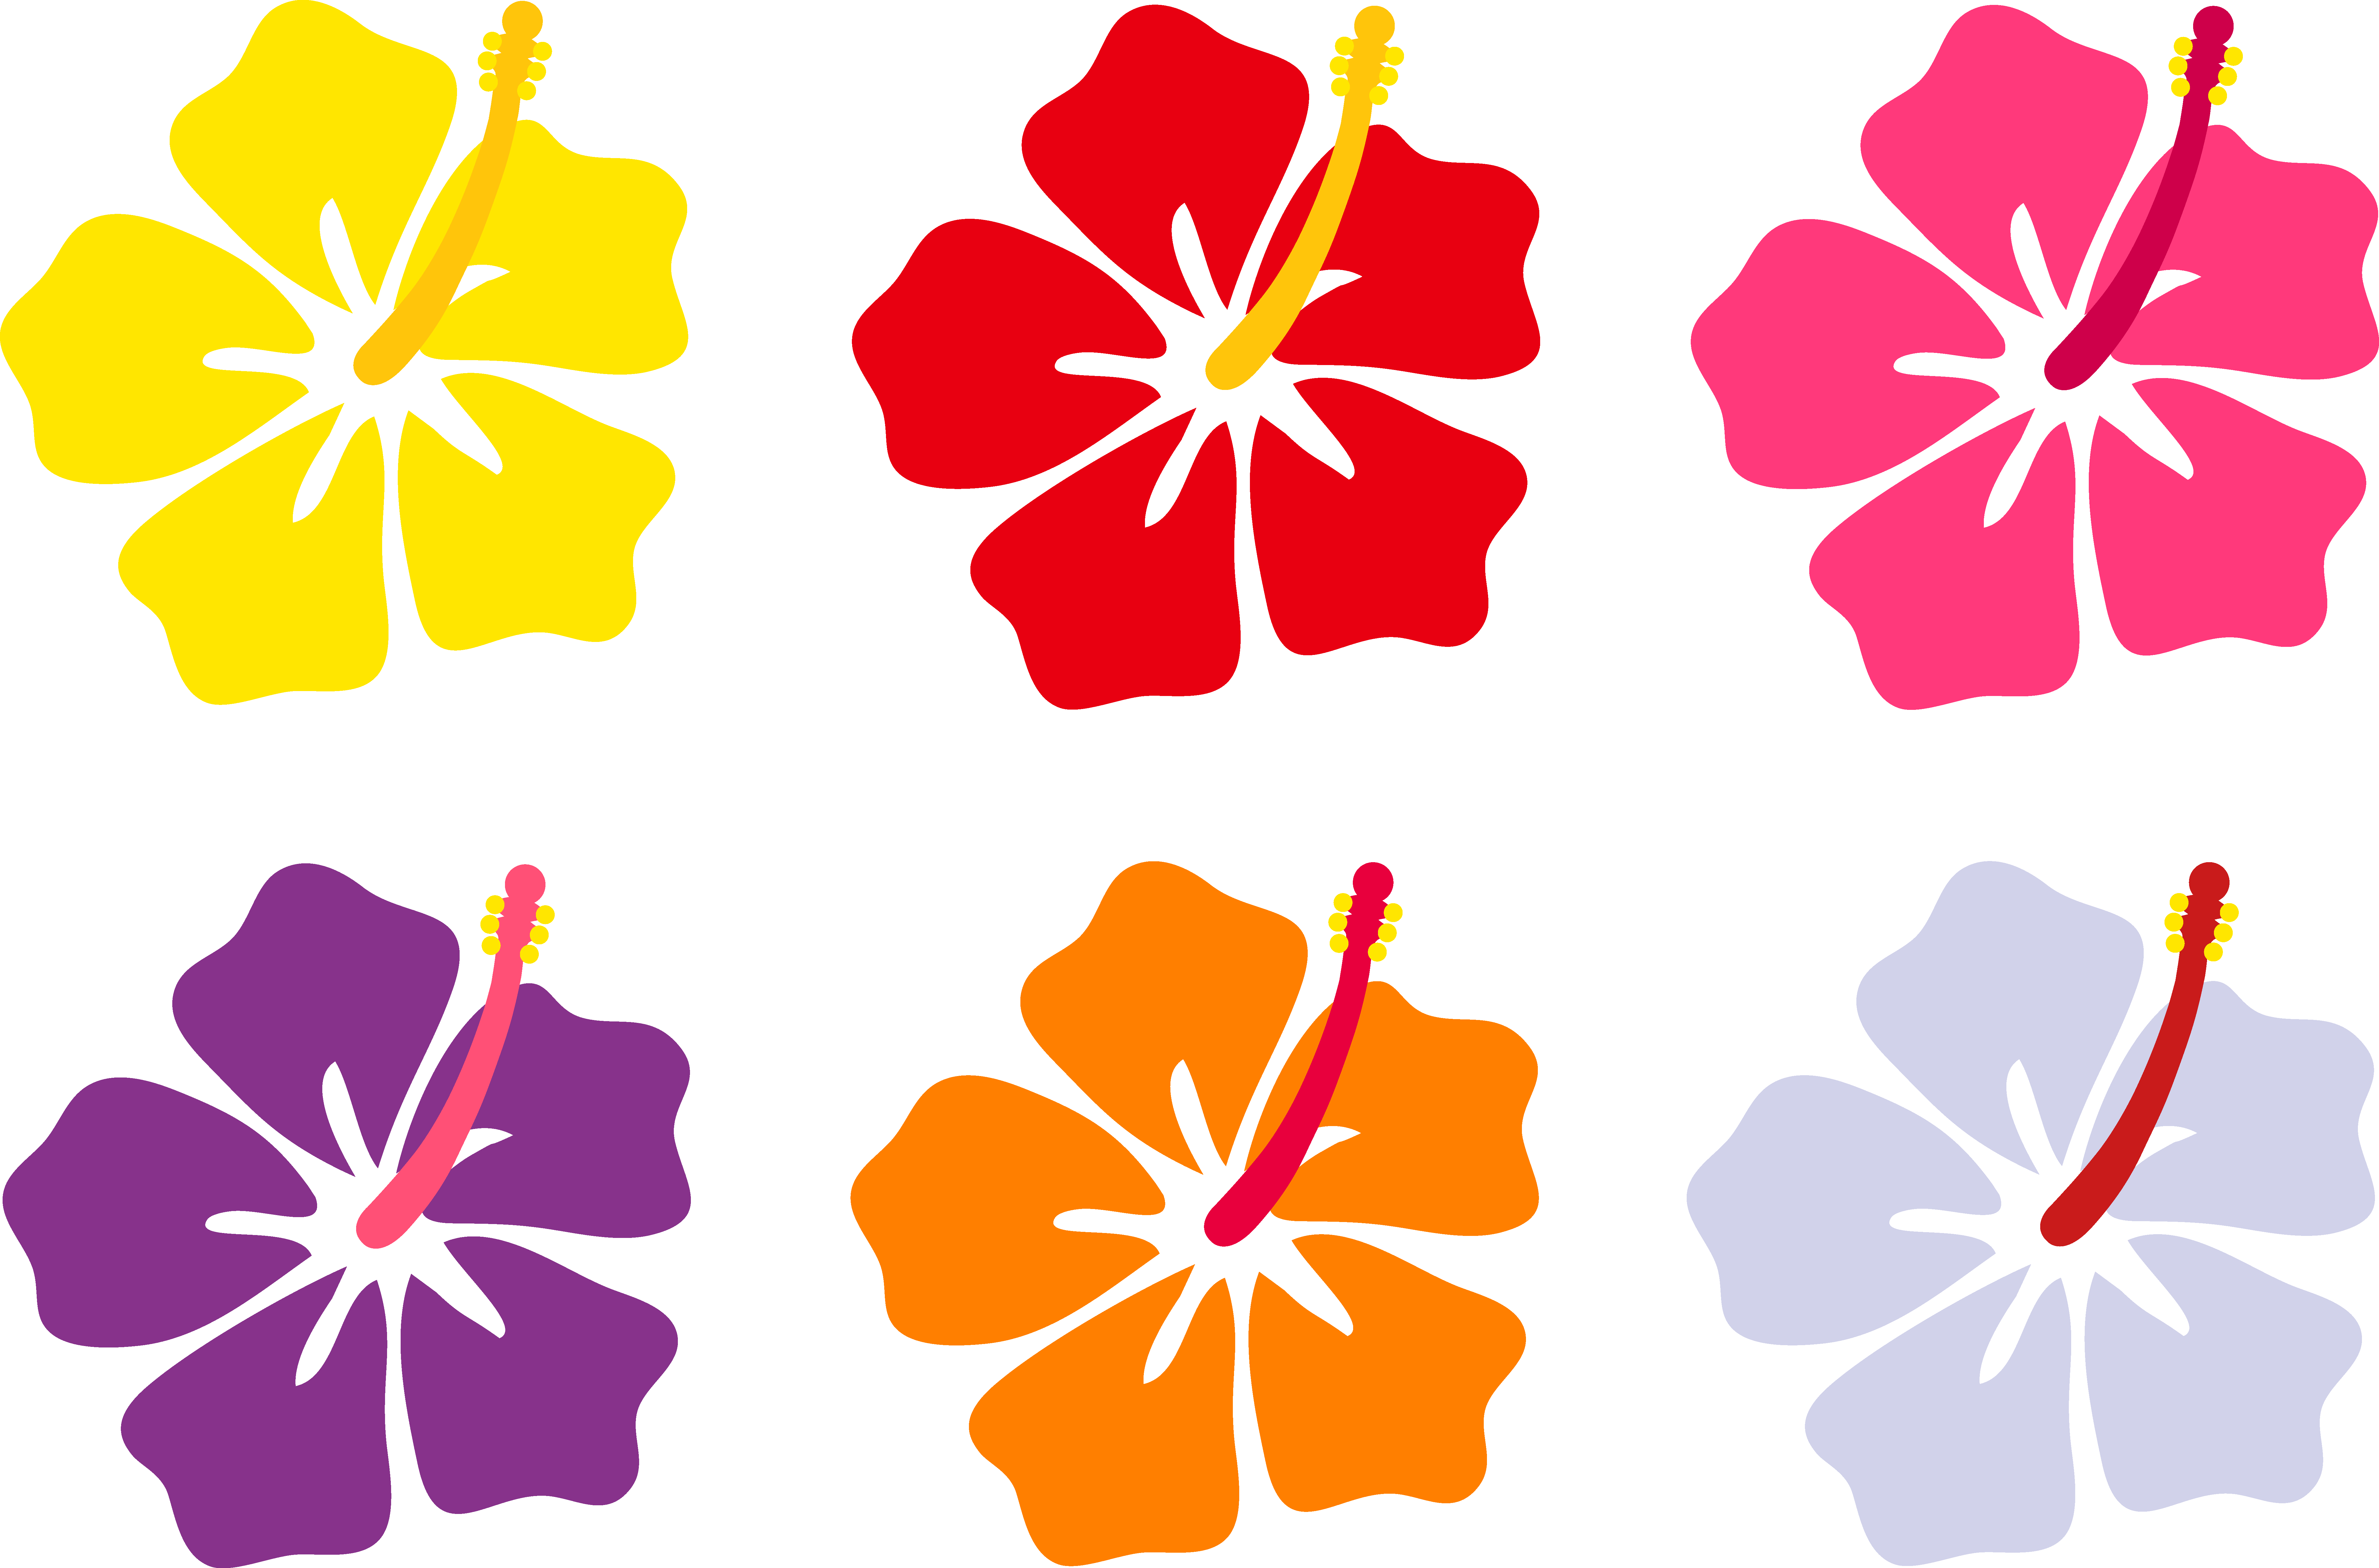 Hibiscus clipart simple. Flower cartoon great image